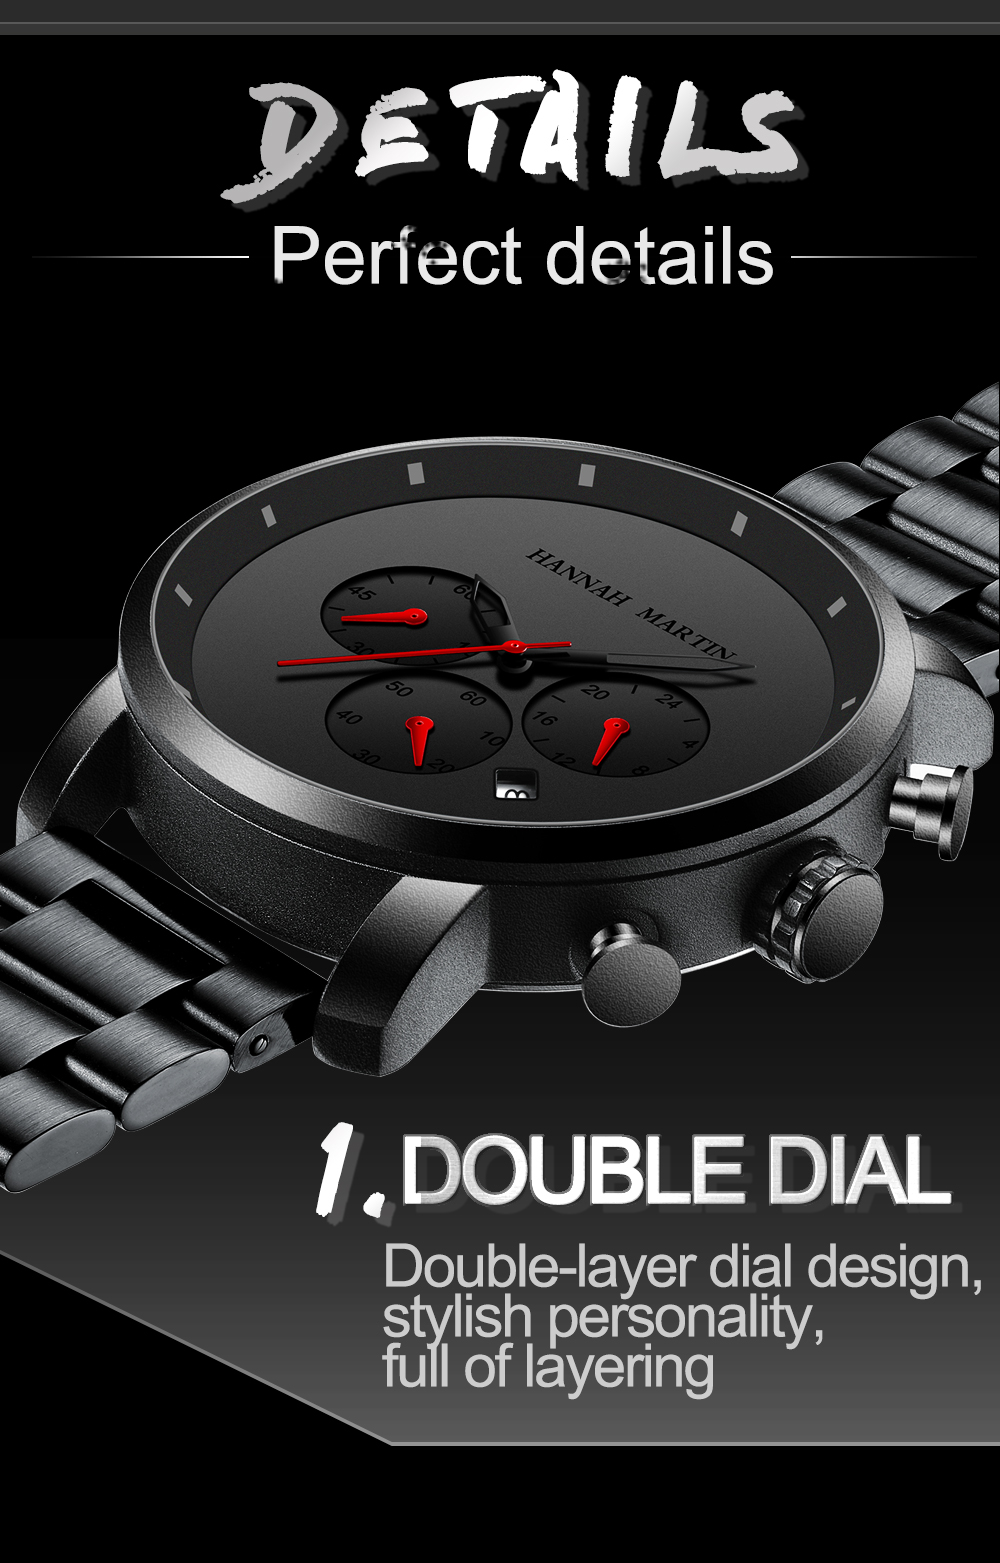 Hd7618071bf064df8a63ec48e983b3838Q DropShipping Big Dial 45mm Full Black Stainless Steel Multi-function Calendar Men's Top Brand Luxury Watches Relogio Masculino